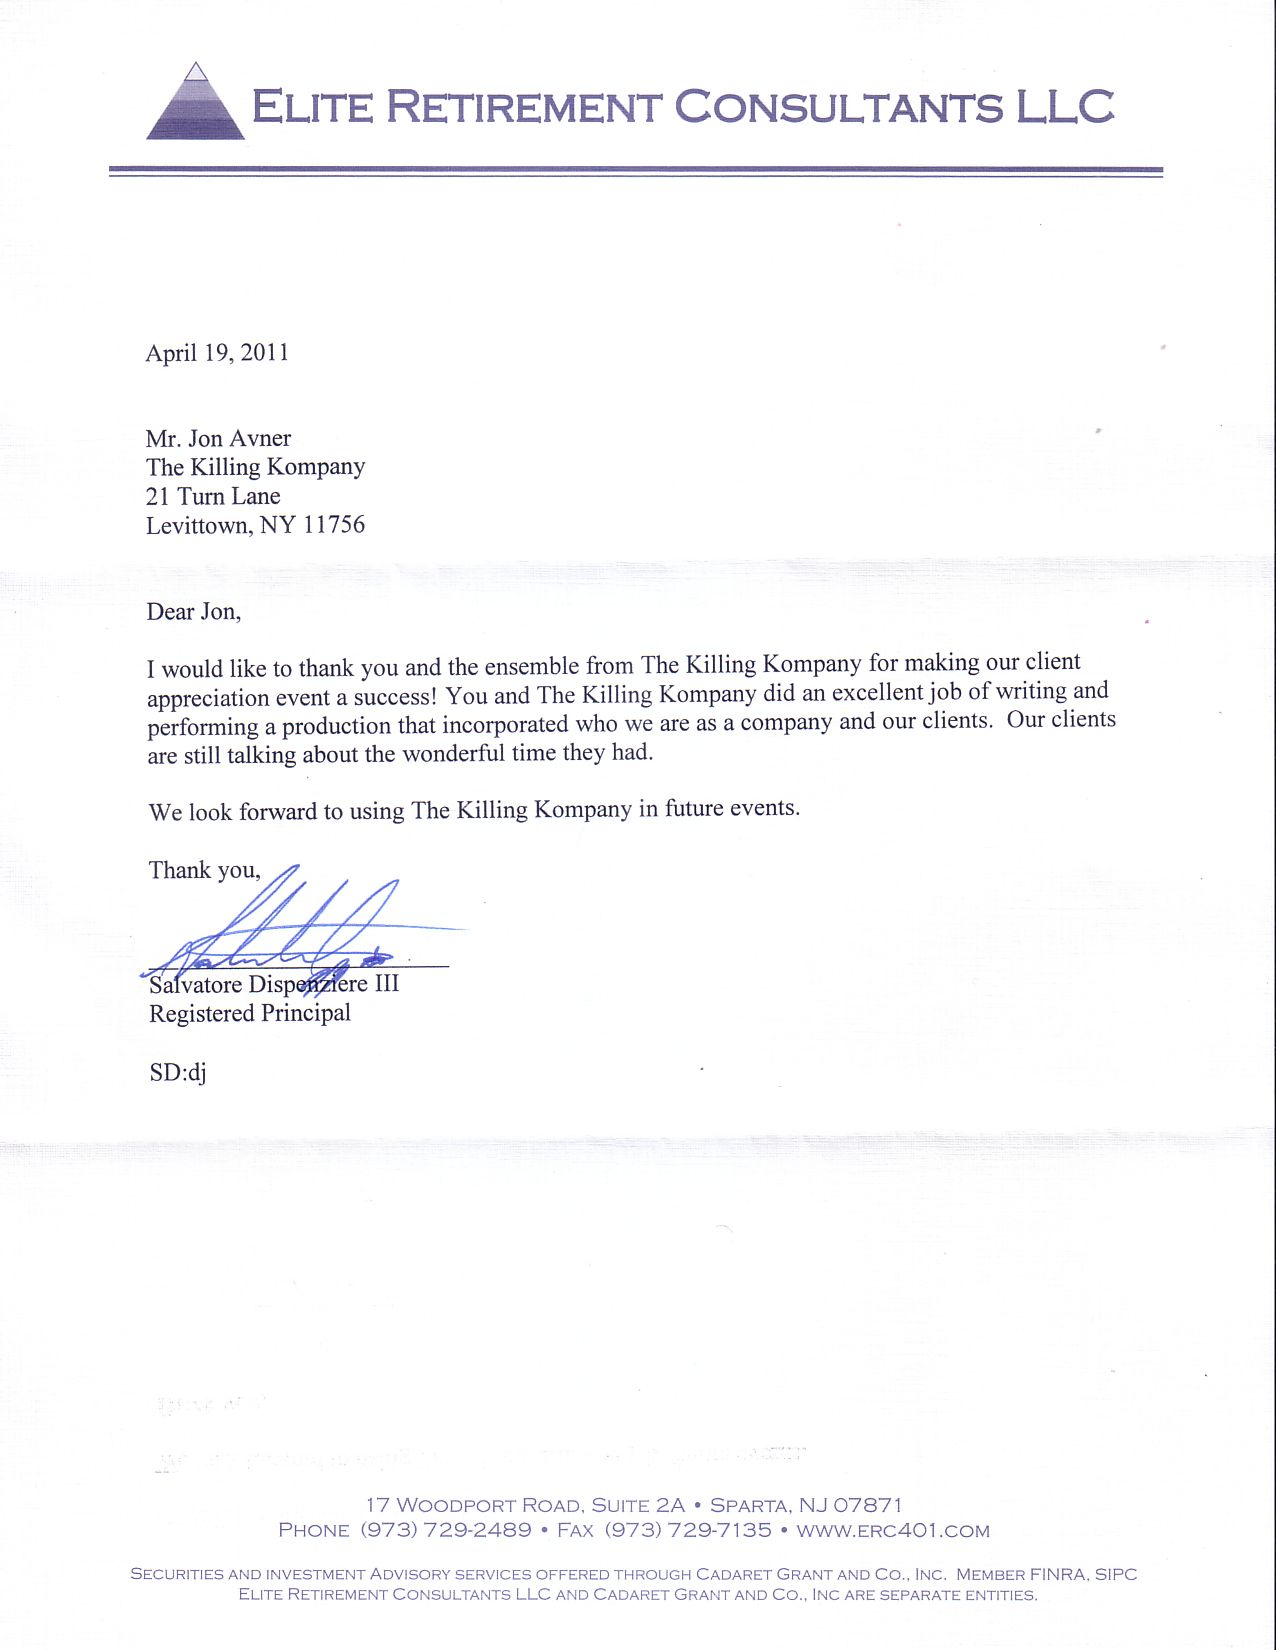 finra 3210 letter template  THE KILLING KOMPANY - MURDER MYSTERY DINNER THEATRE SHOWS ...